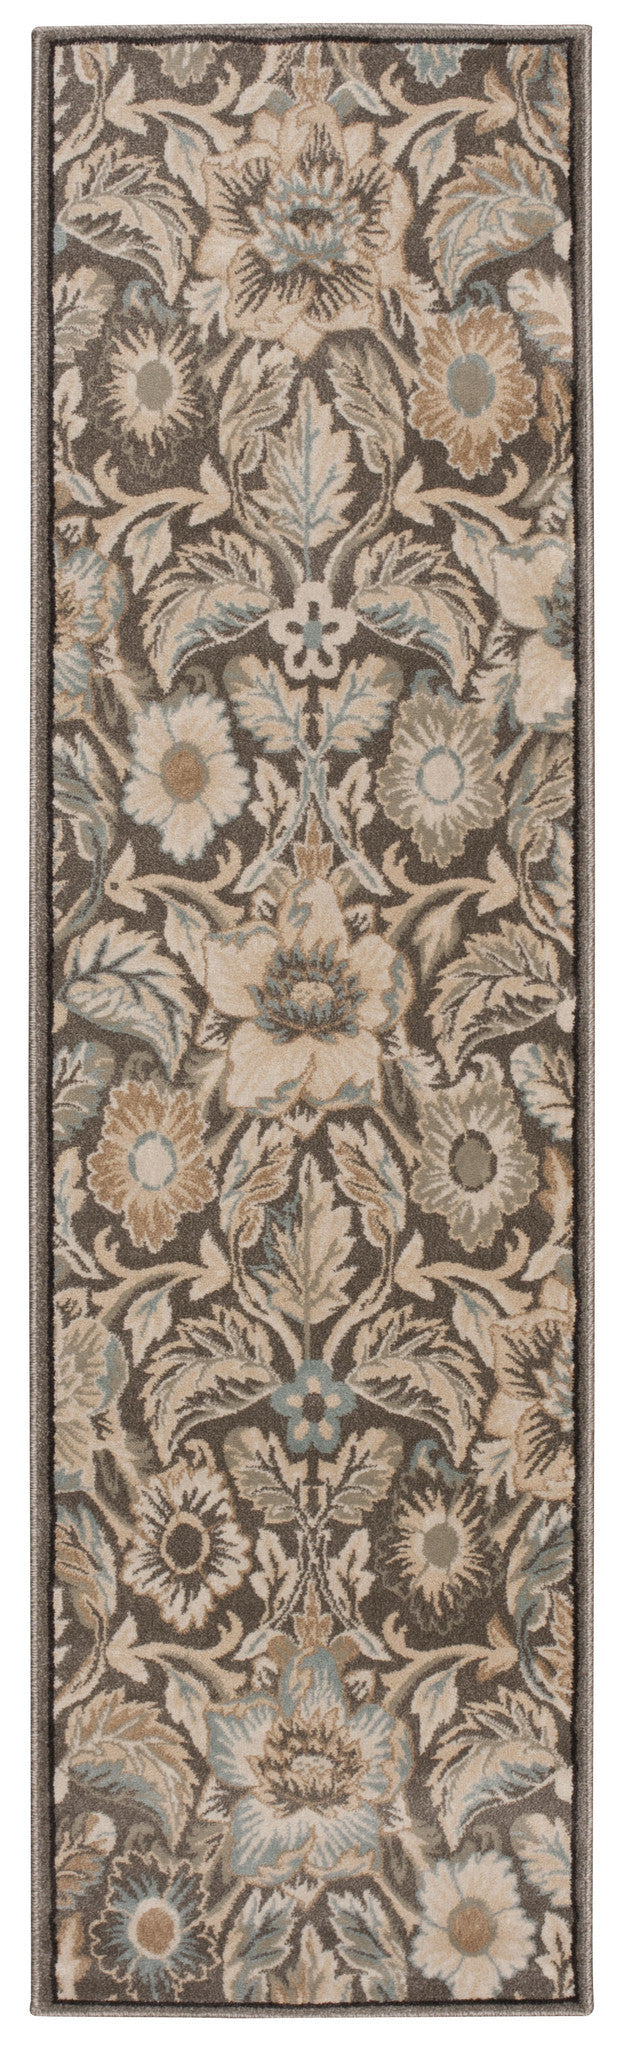 Nourison Walden Grey Area Rug WAL02 GRY